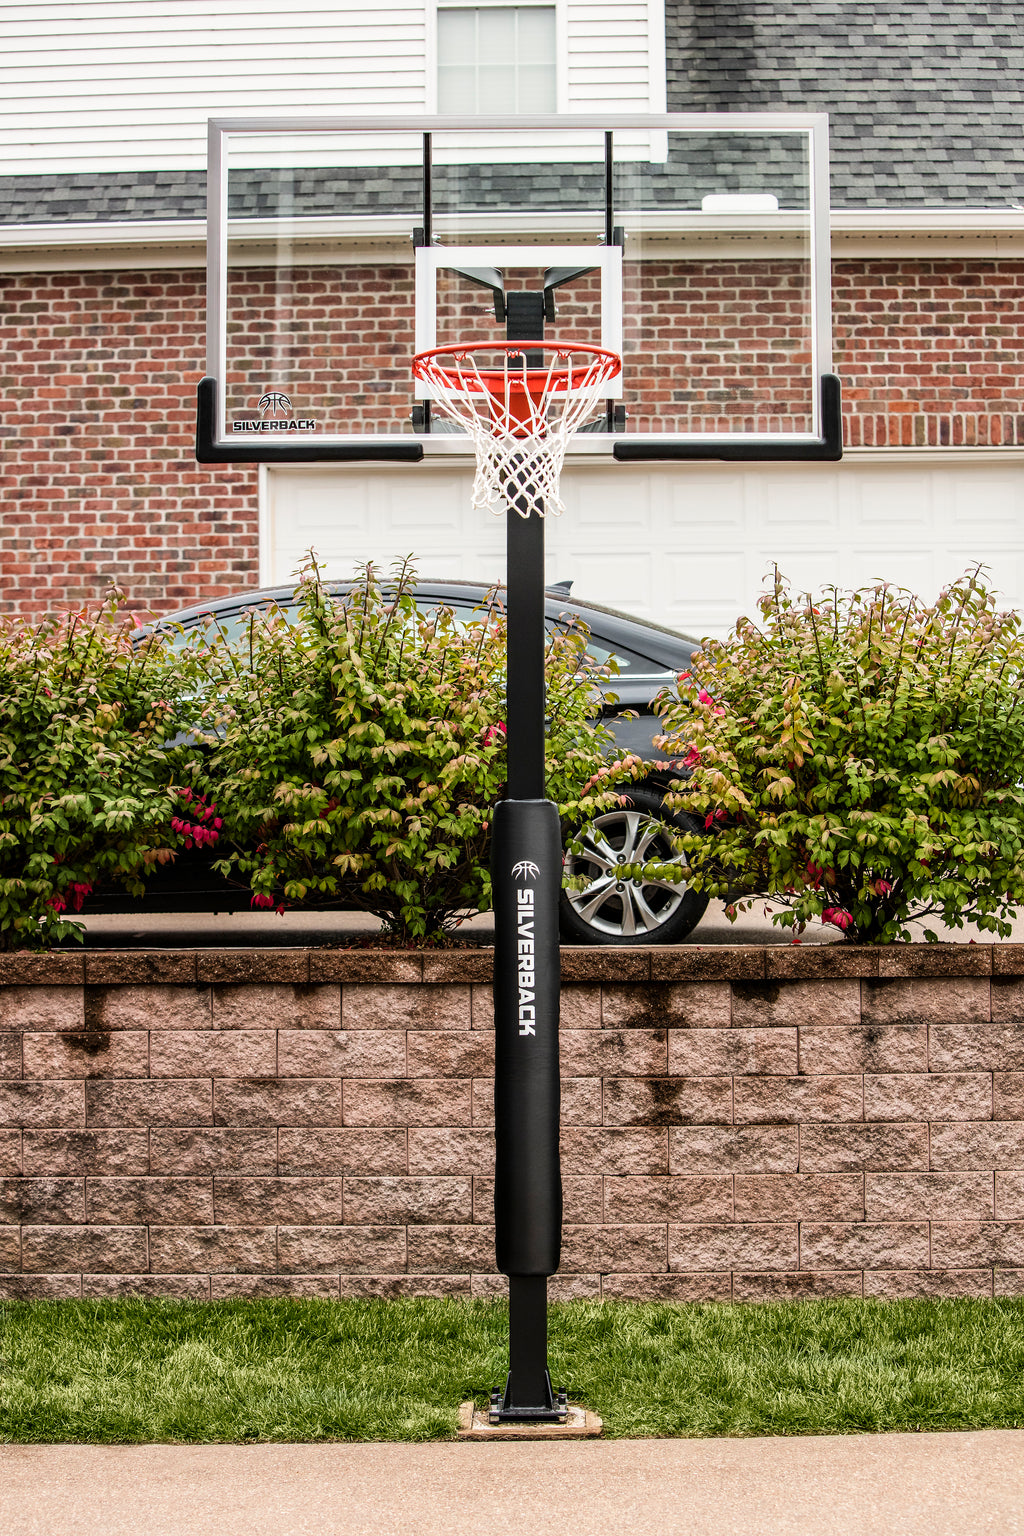 Silverback 60 In-Ground Basketball Hoop with Adjustable-Height Tempered Glass Backboard and Pro-Style Breakaway Rim